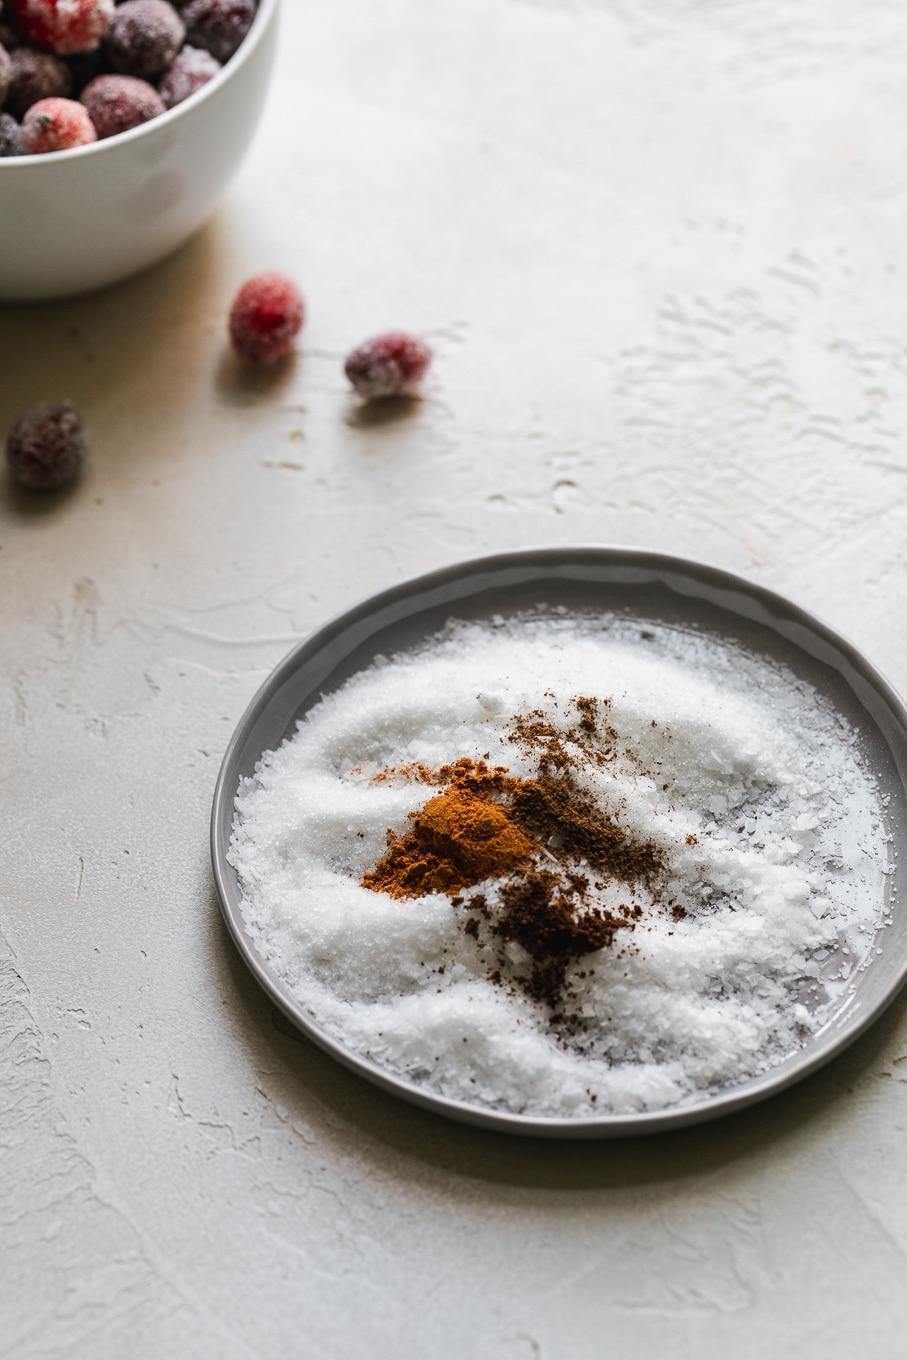 Close up shot of a plate of sugar, salt, and spices